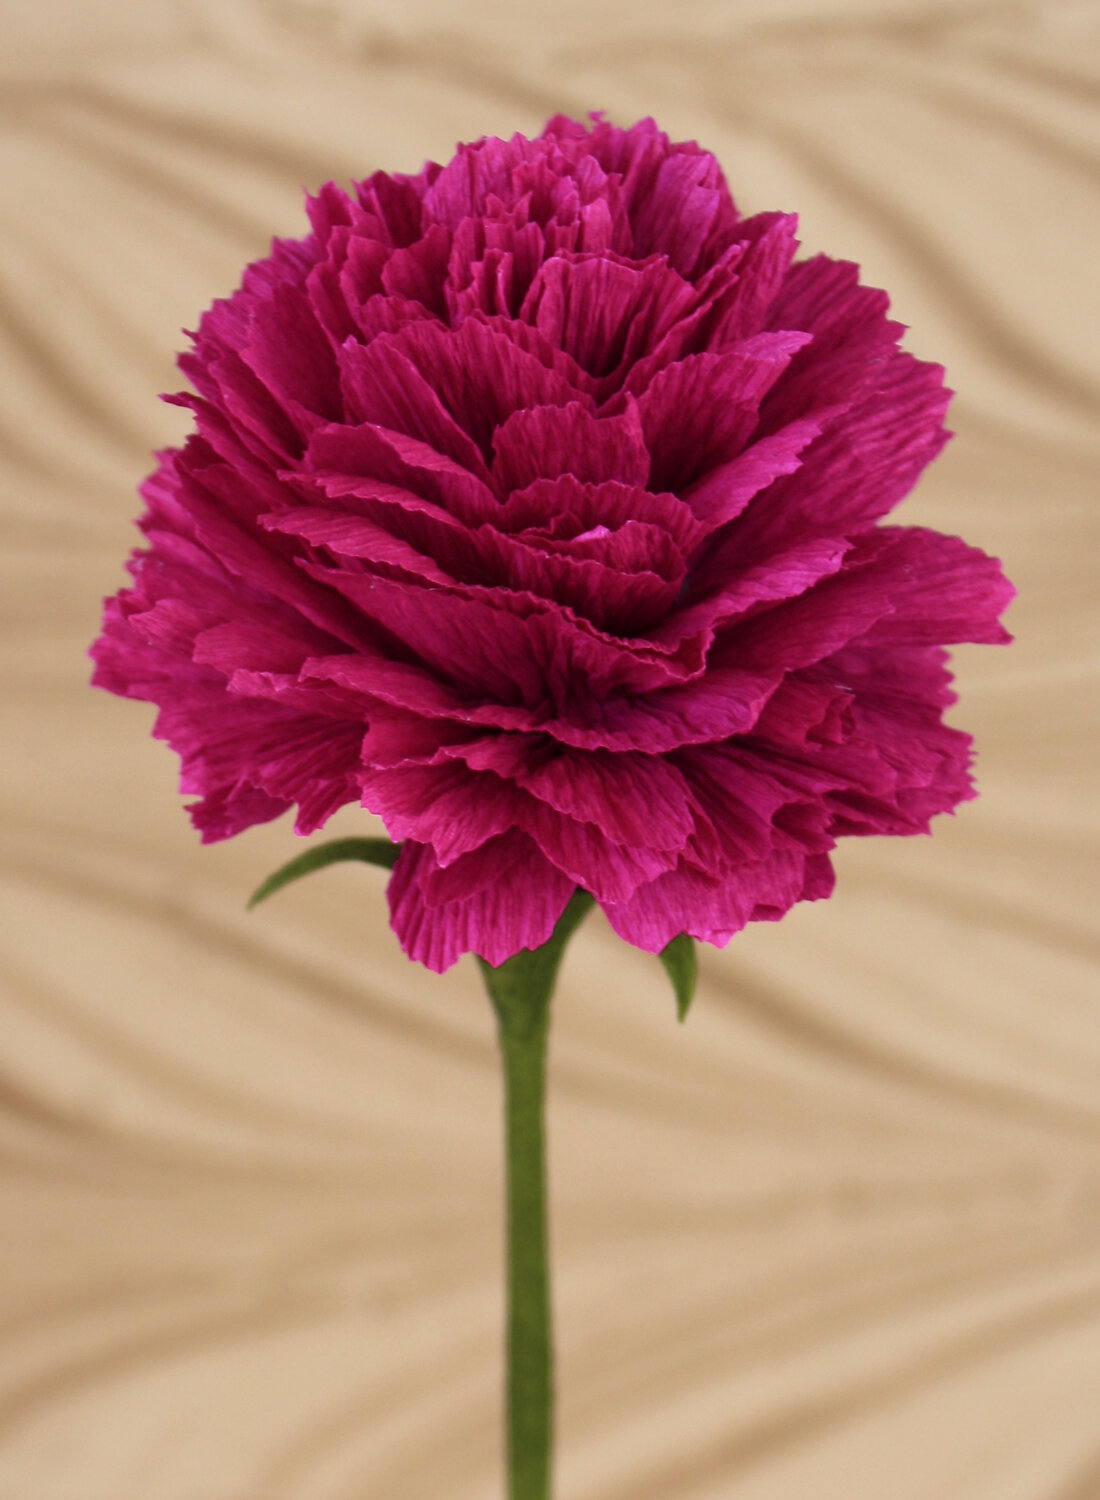 Pics Of Carnations : carnations, Crepe, Paper, Carnation, Flower, PAPERCRAFT, MIRACLES